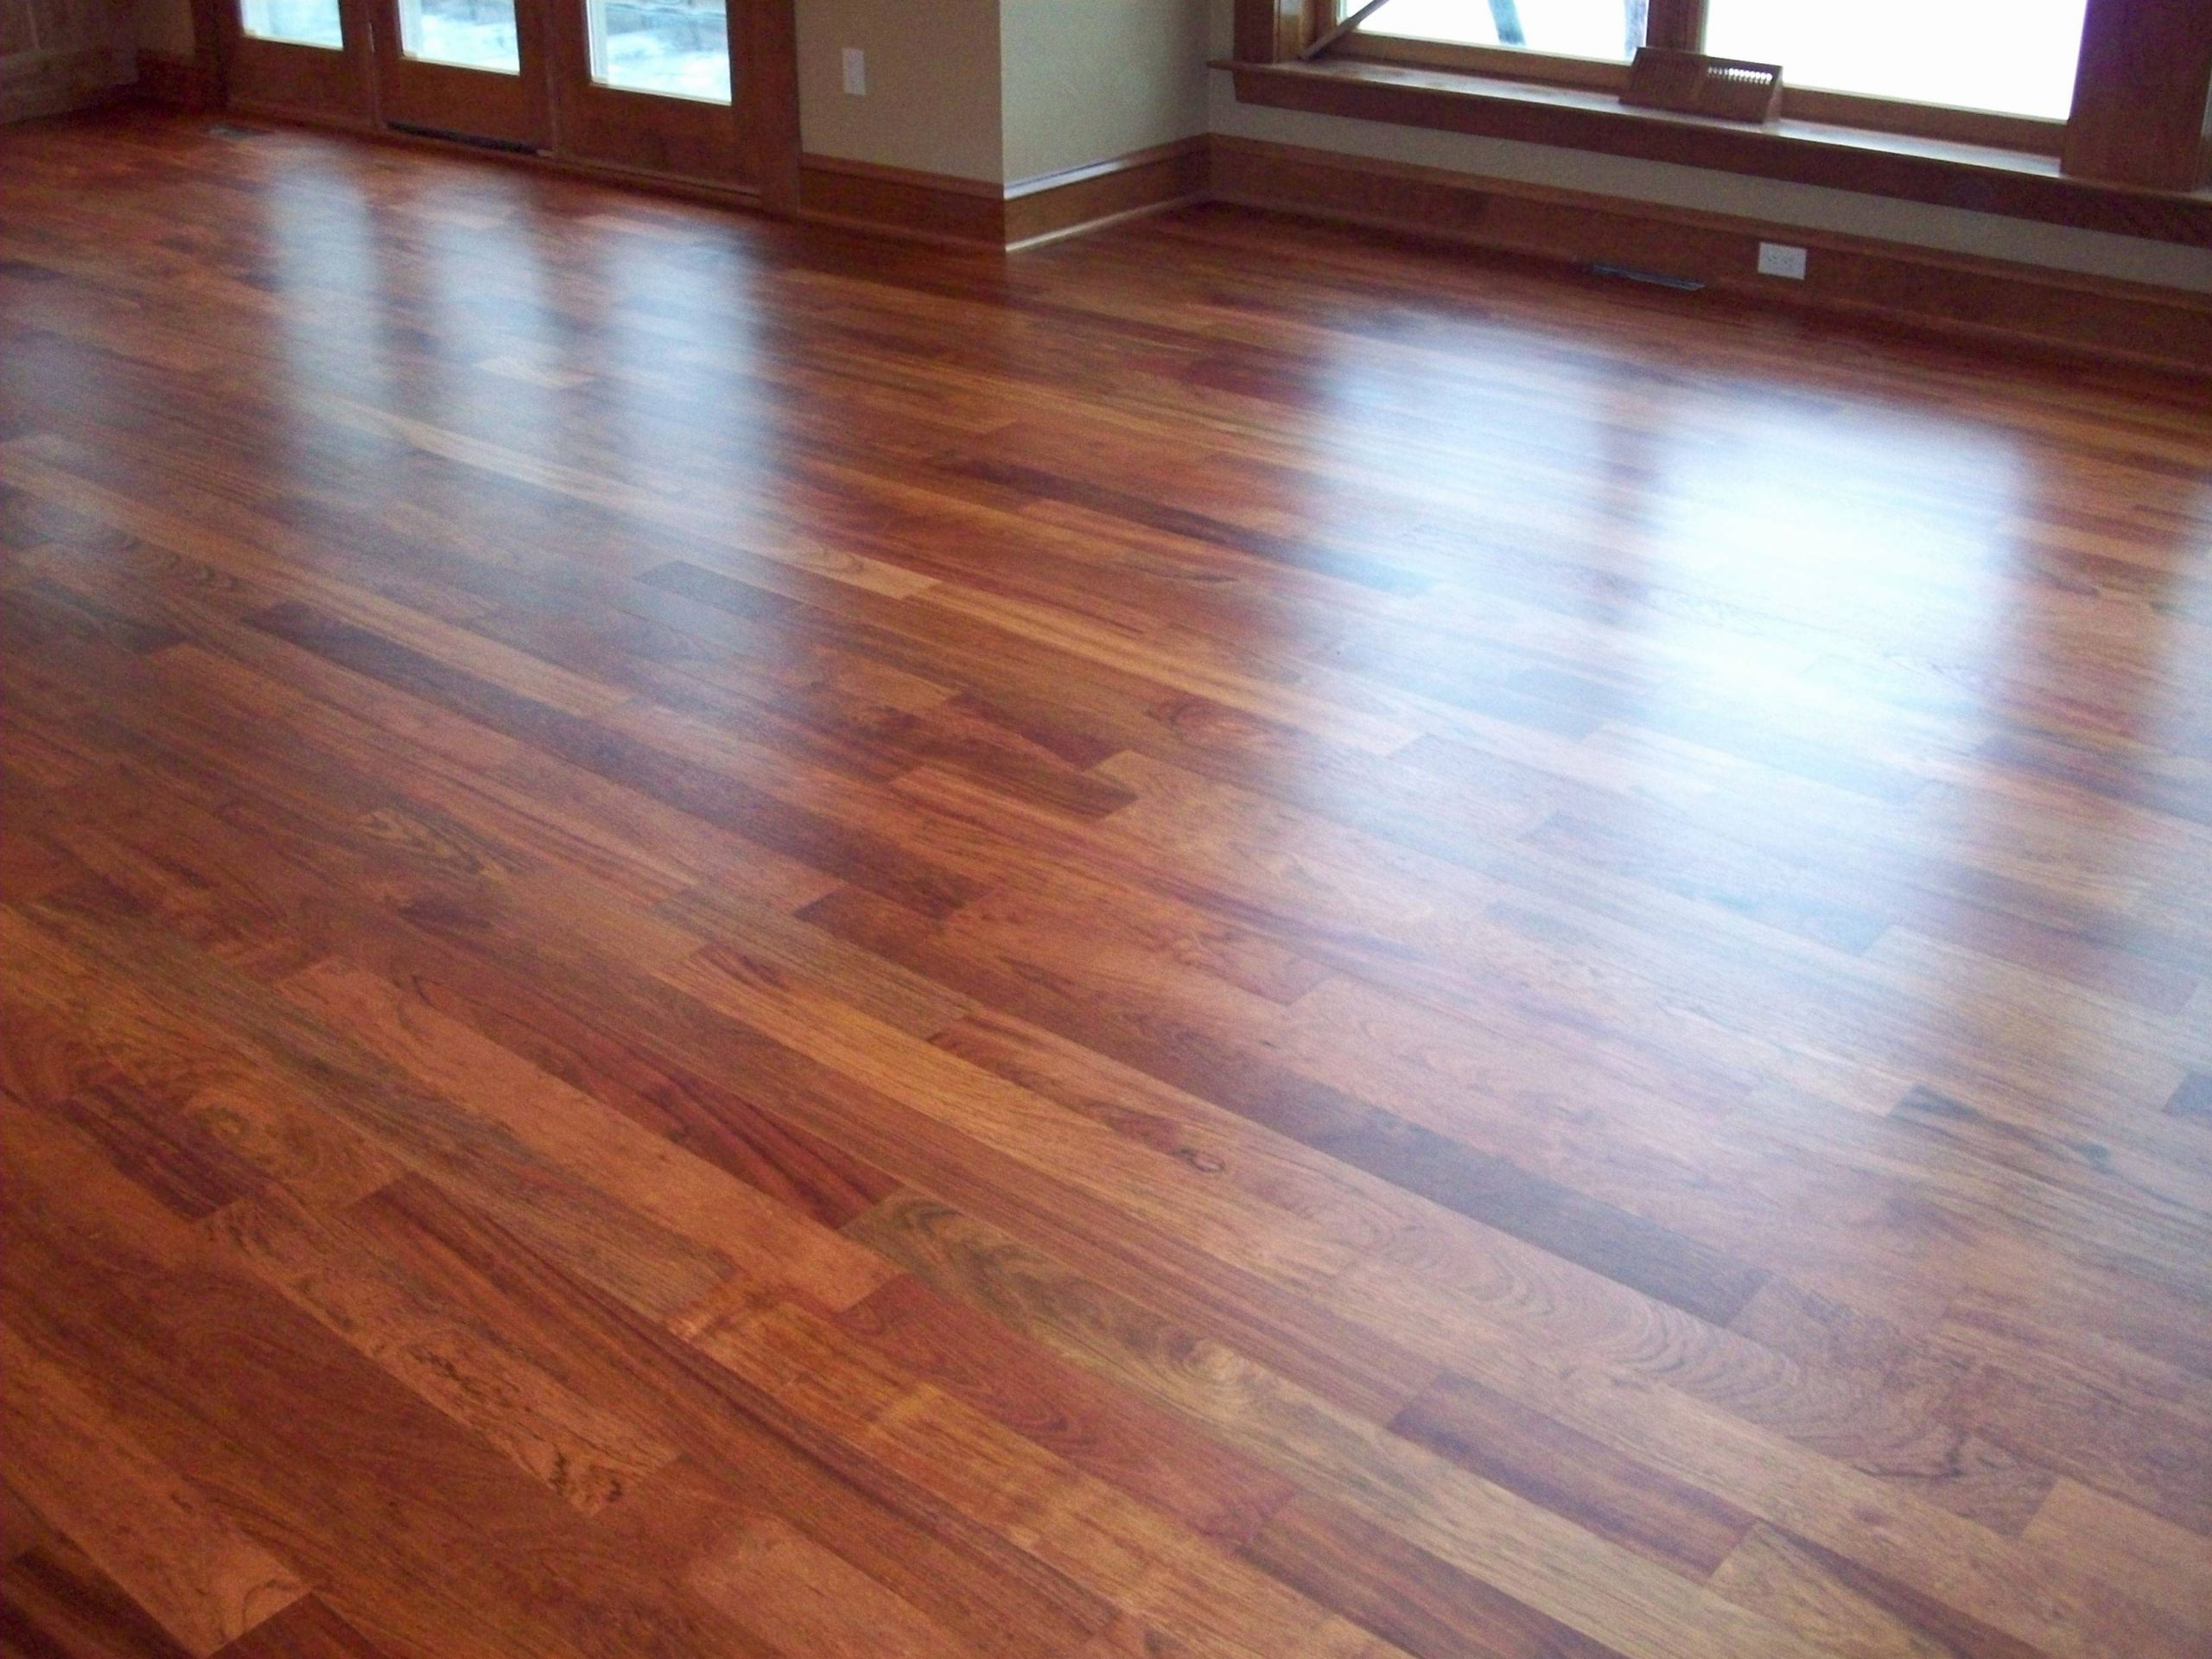 cheap laminate hardwood flooring of laminate wood floor cleaner best of refinishing hardwood floors inside laminate wood floor cleaner photo of engaging discount hardwood flooring 5 where to